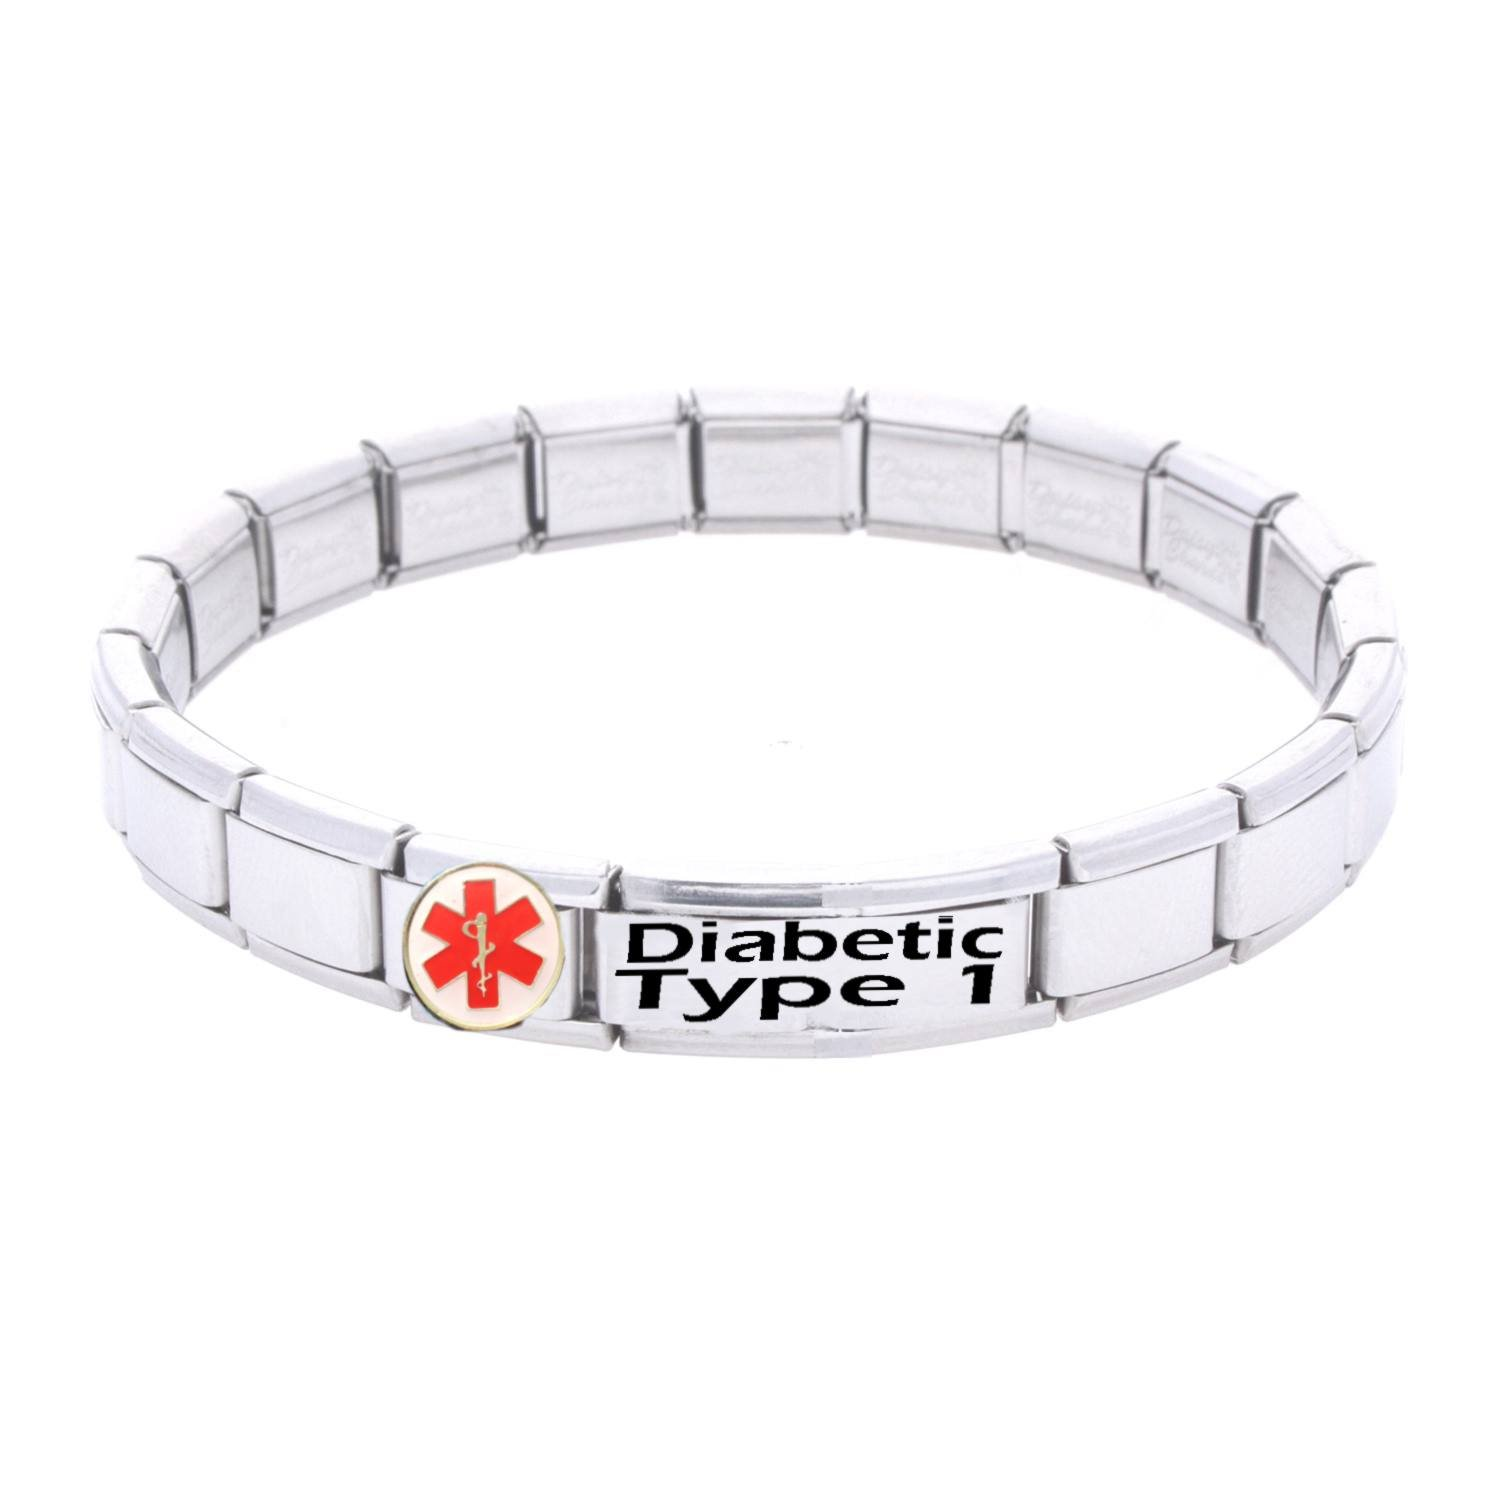 bracelets diabetic id myidsleek bracelet type health diabetes best